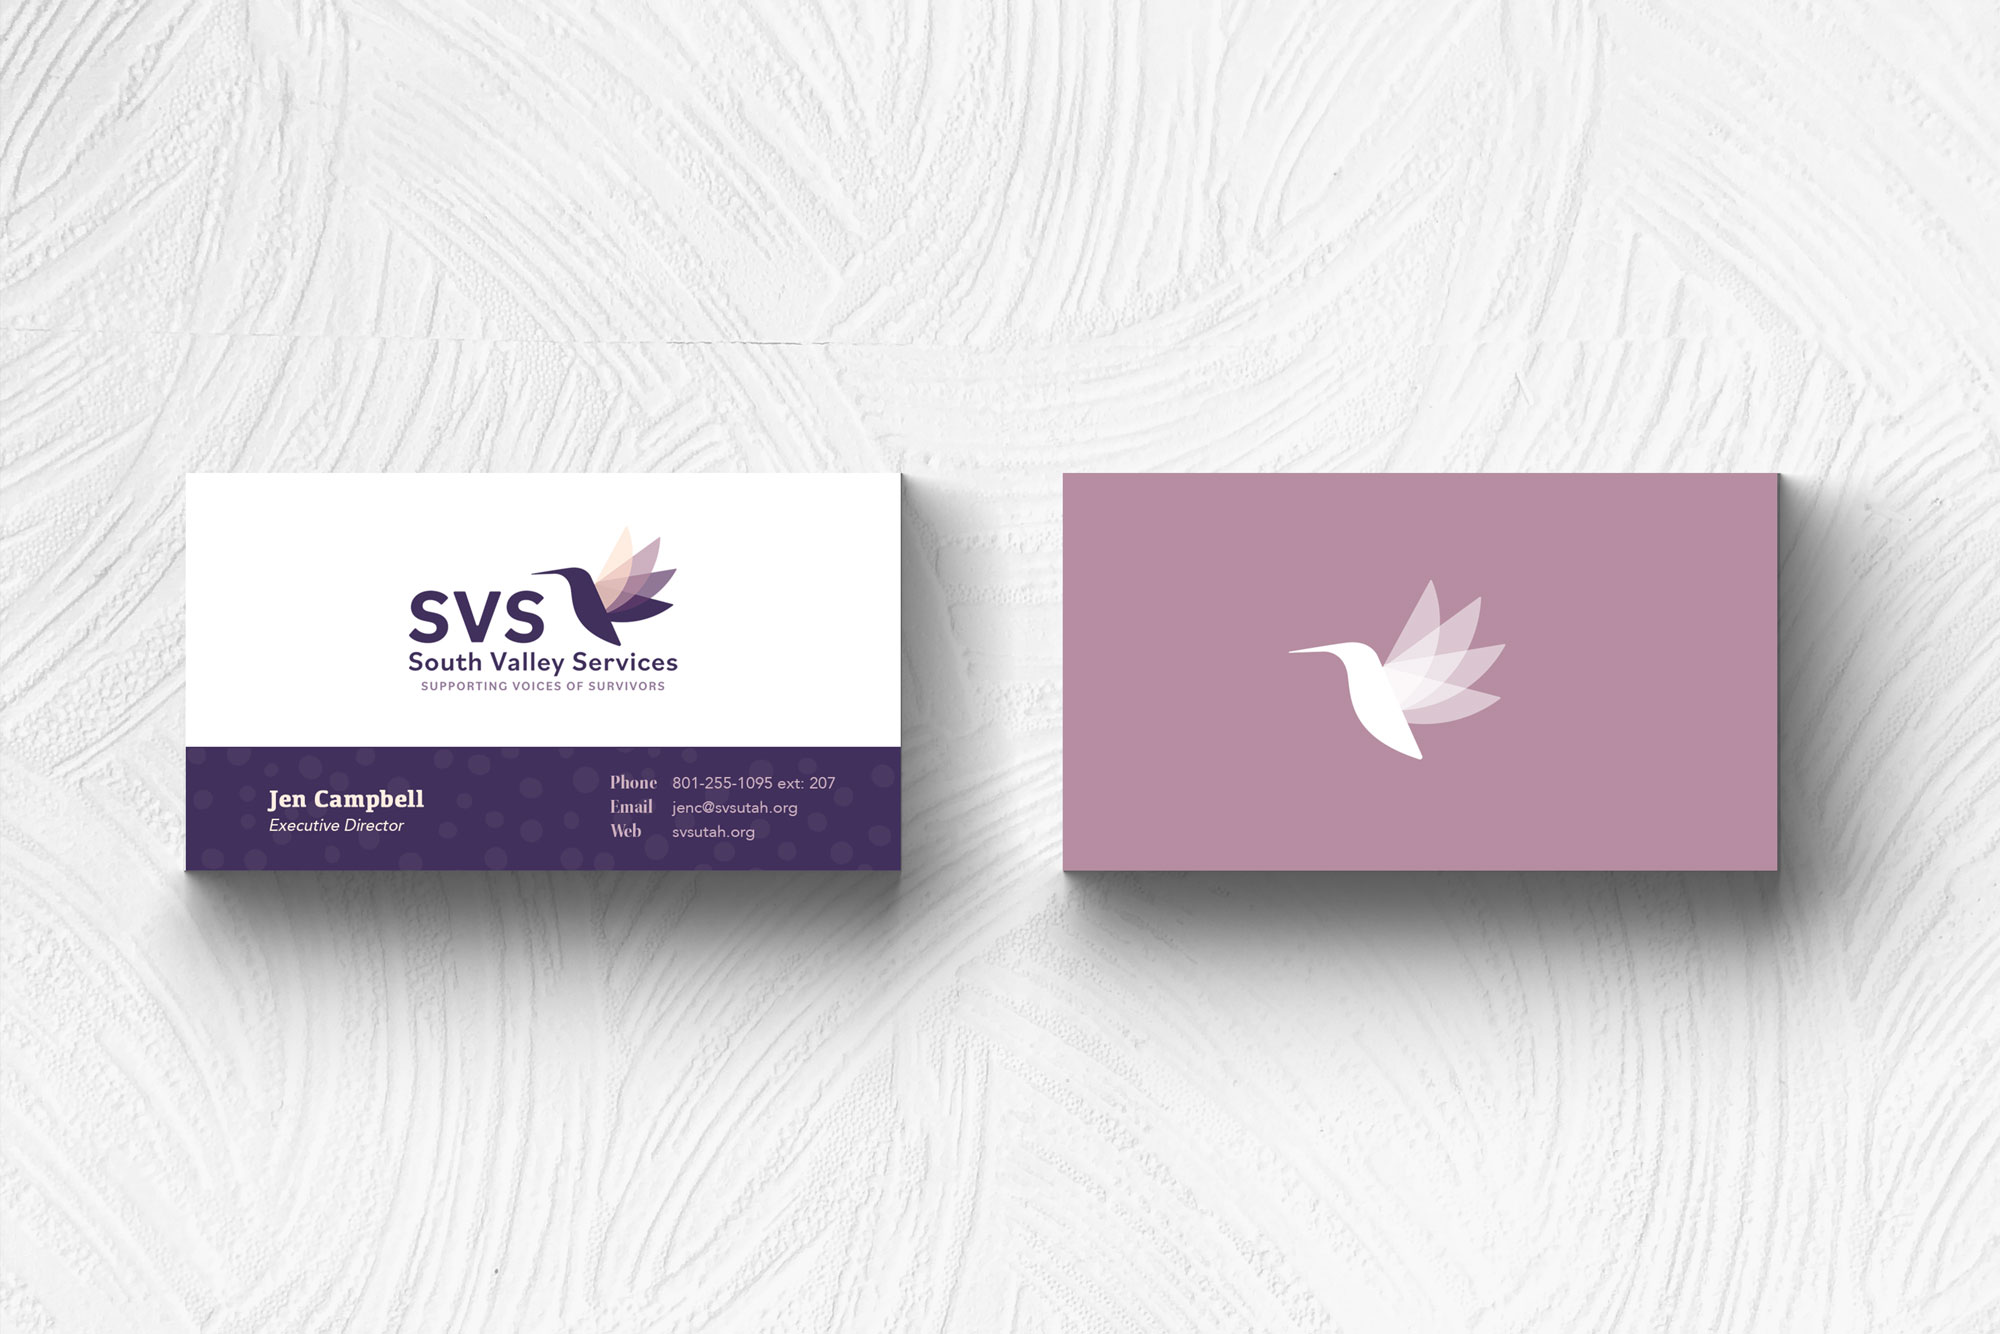 SVS business card